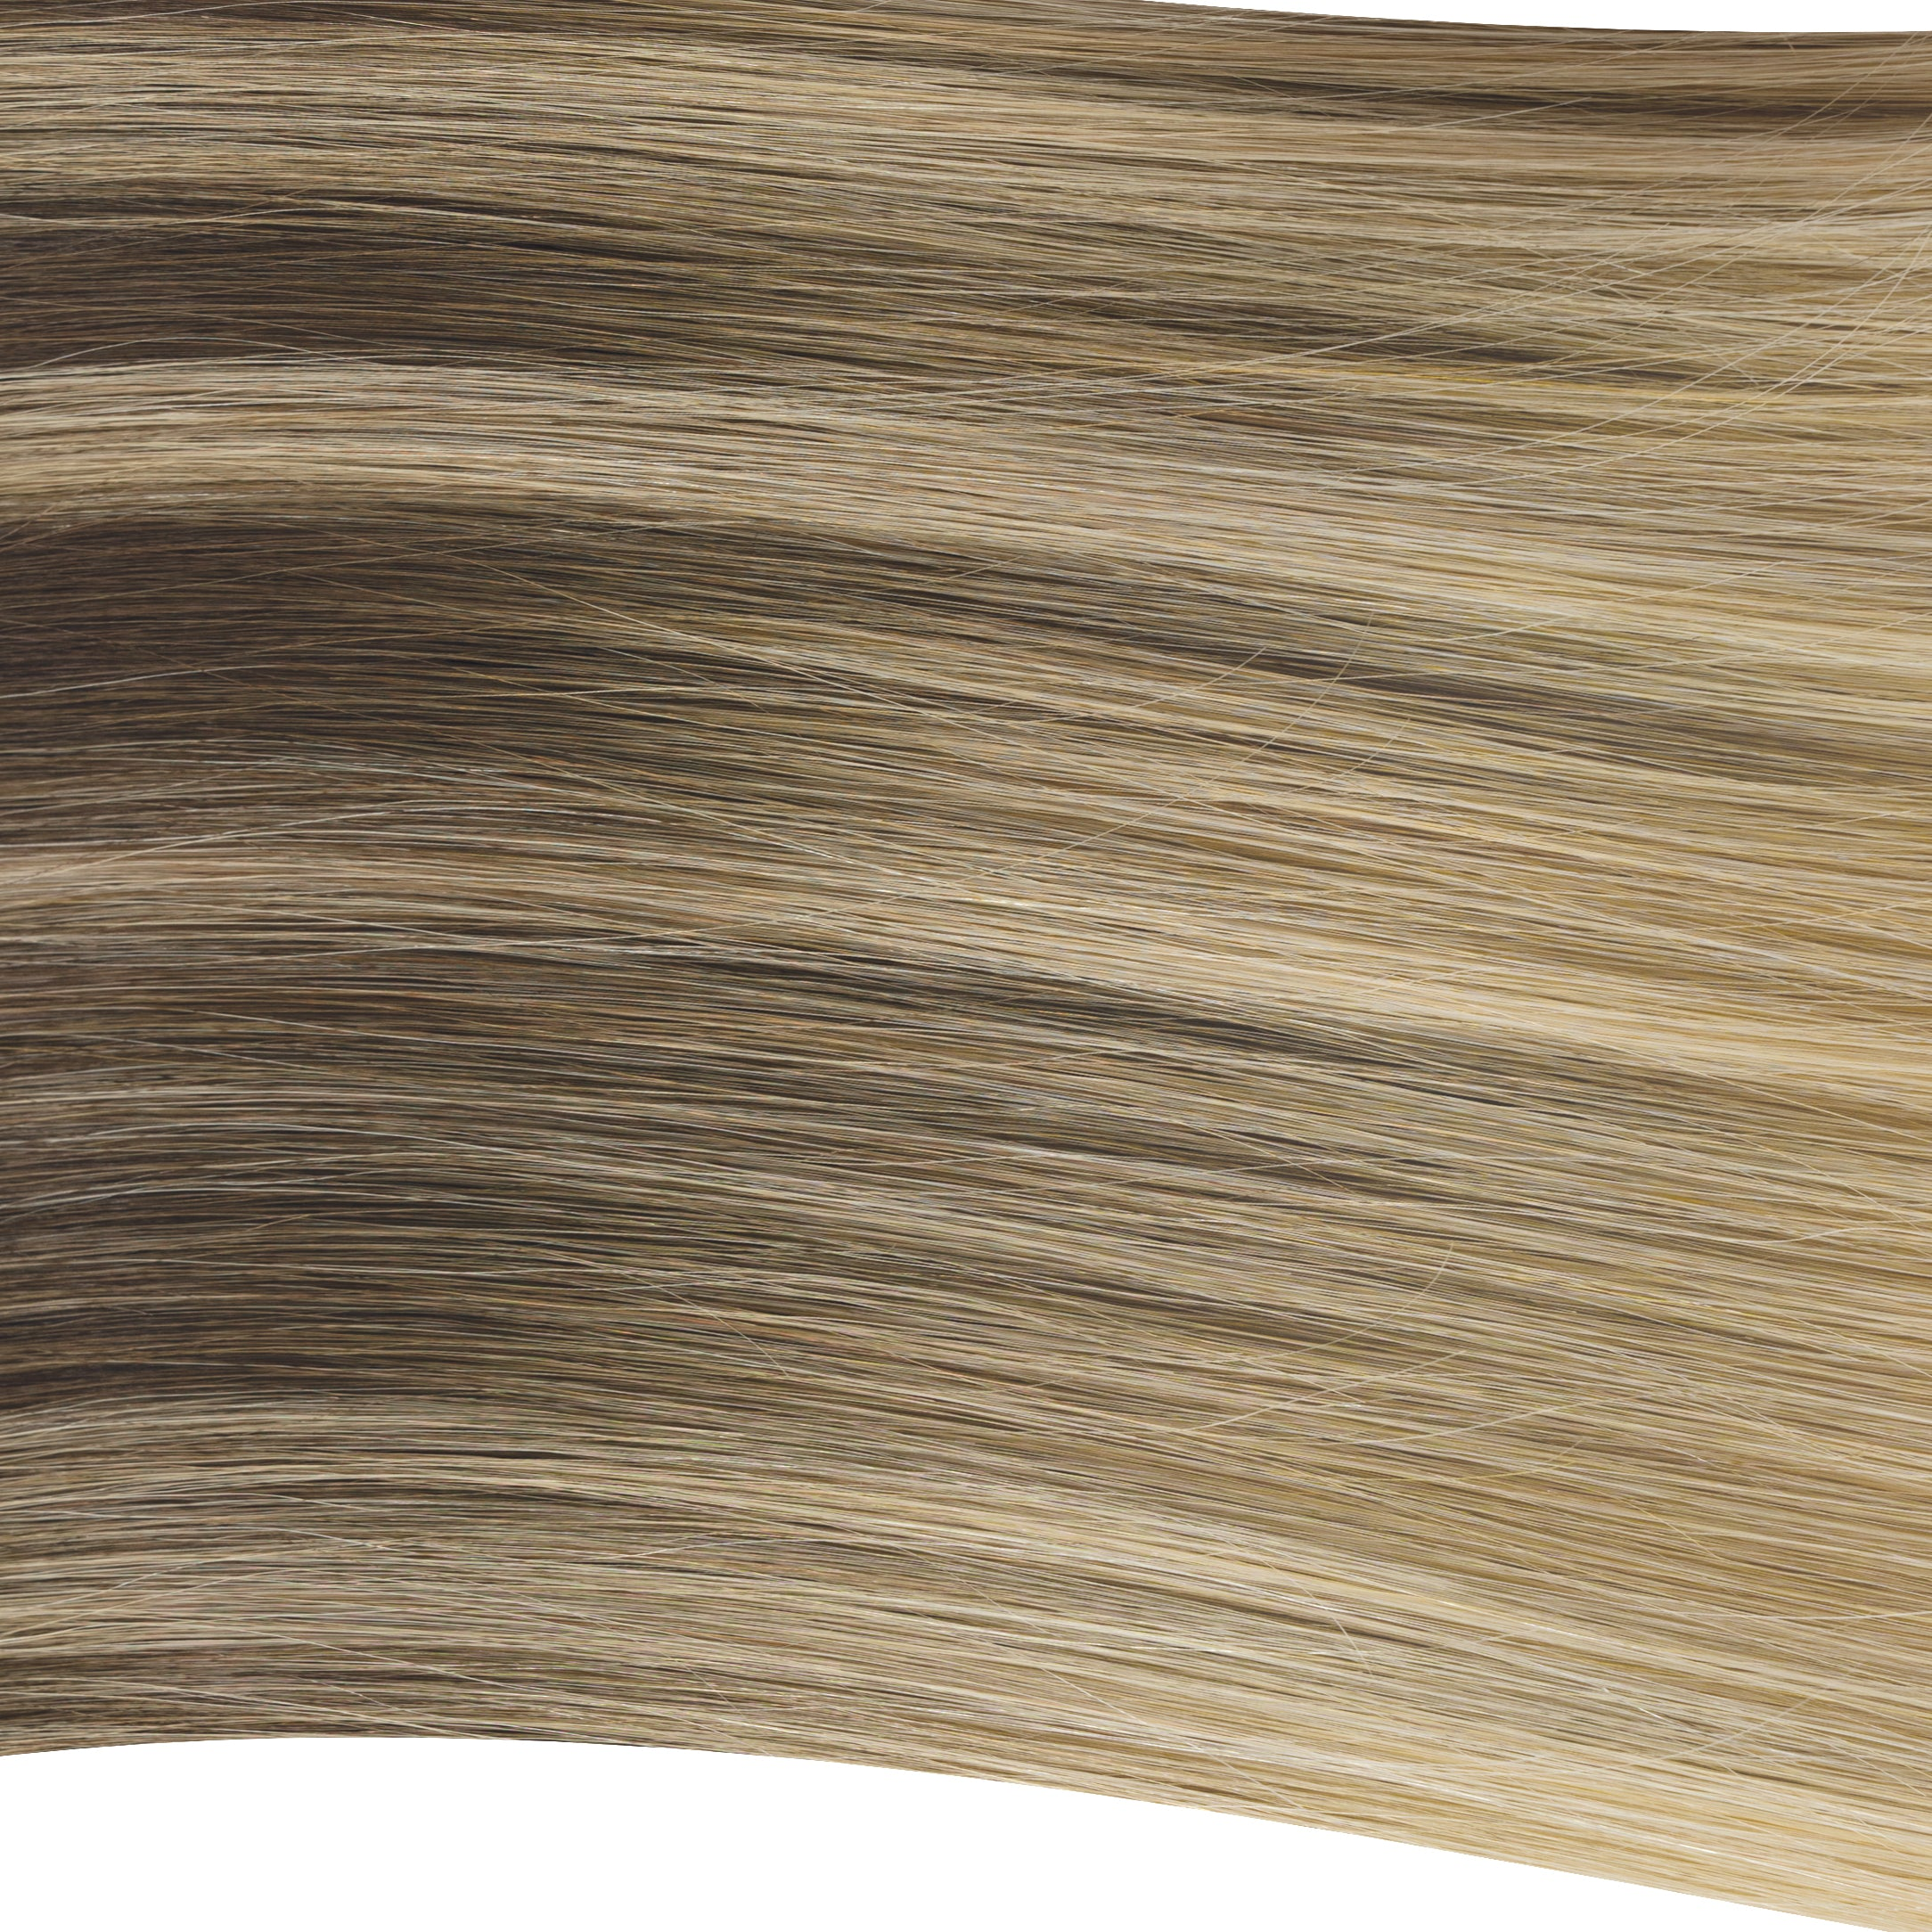 Halocouture® Tape-in Extension - Balayage B14/24 | Light Warm Blonde with Highlights with Balayage Root #3, Level 5/6